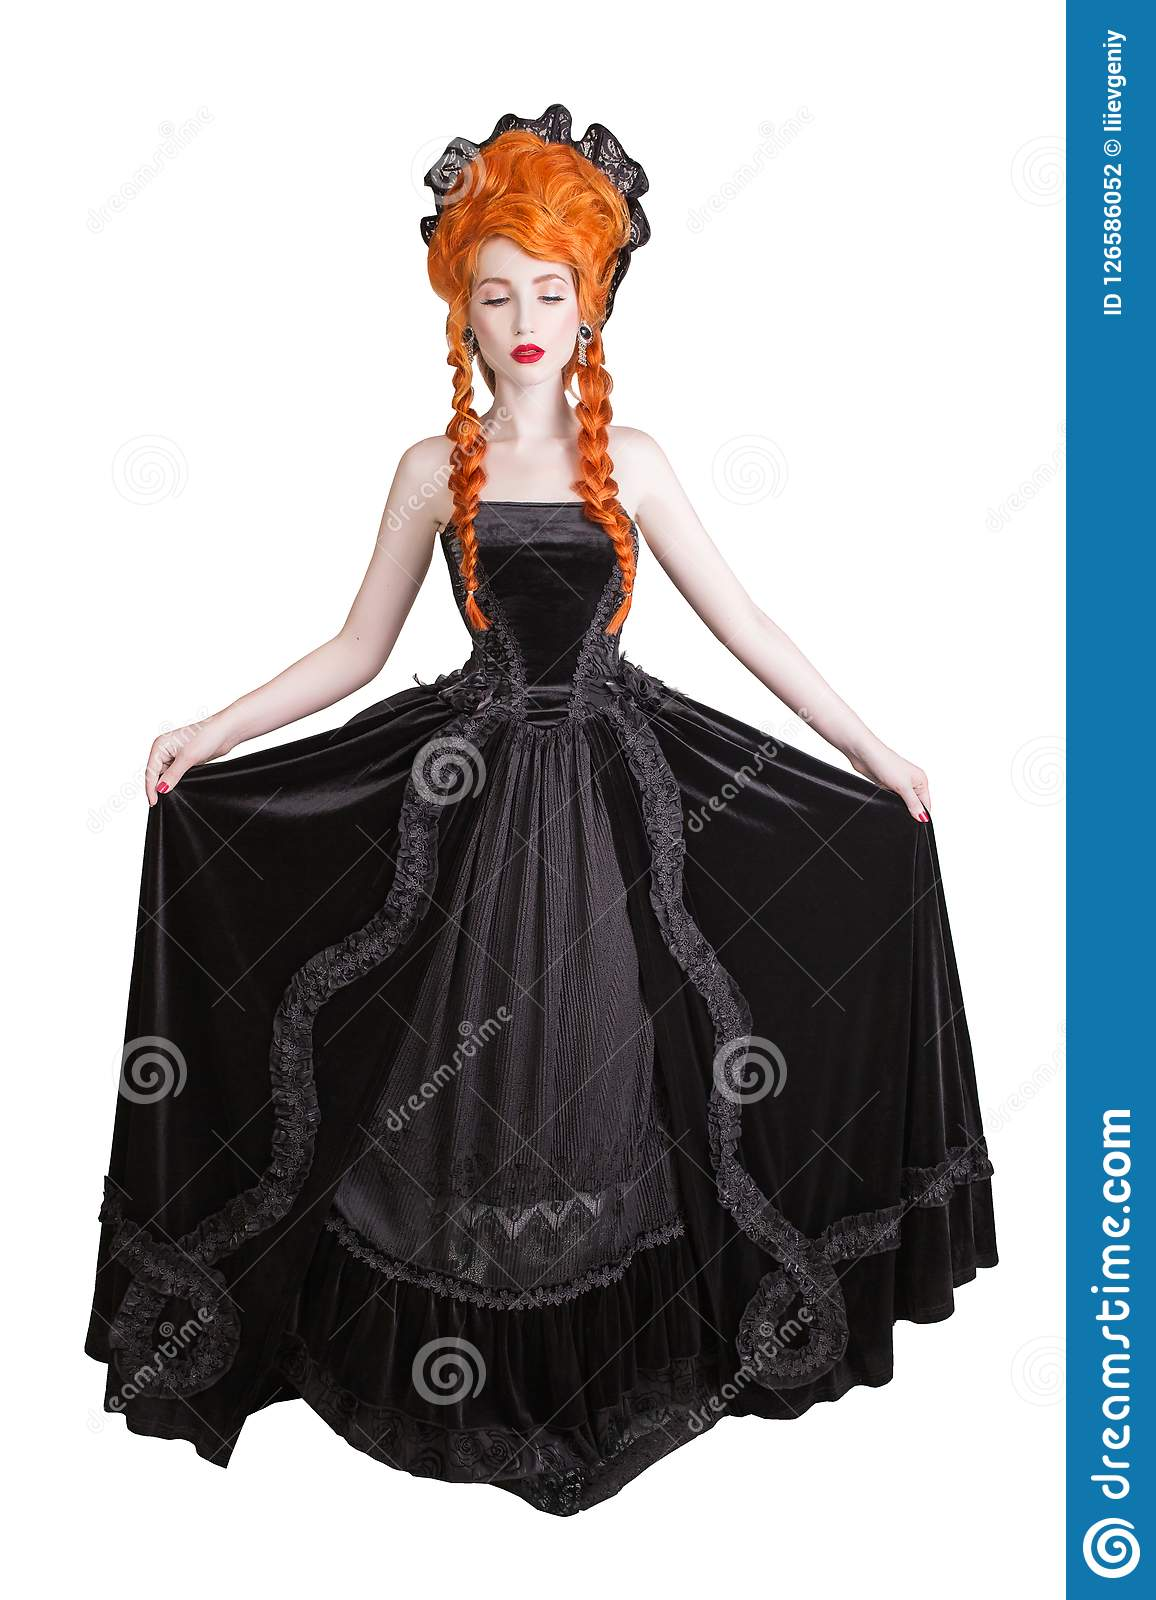 Edwardian redhead queen with halloween hairstyle isolated on white background. Fairytale queen in black gothic dress.